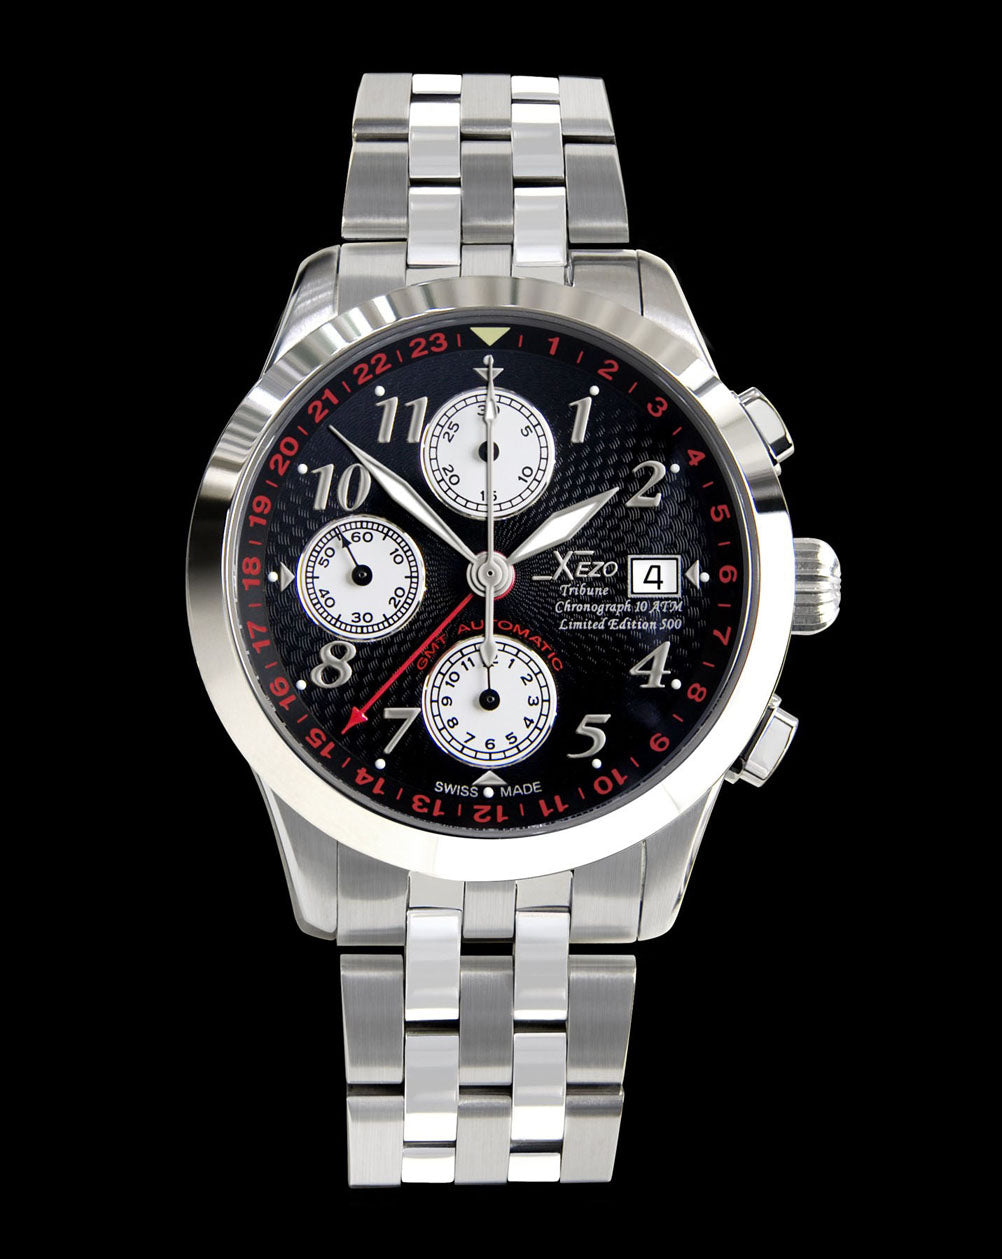 Tribune Chronograph GMT Valjoux 7754